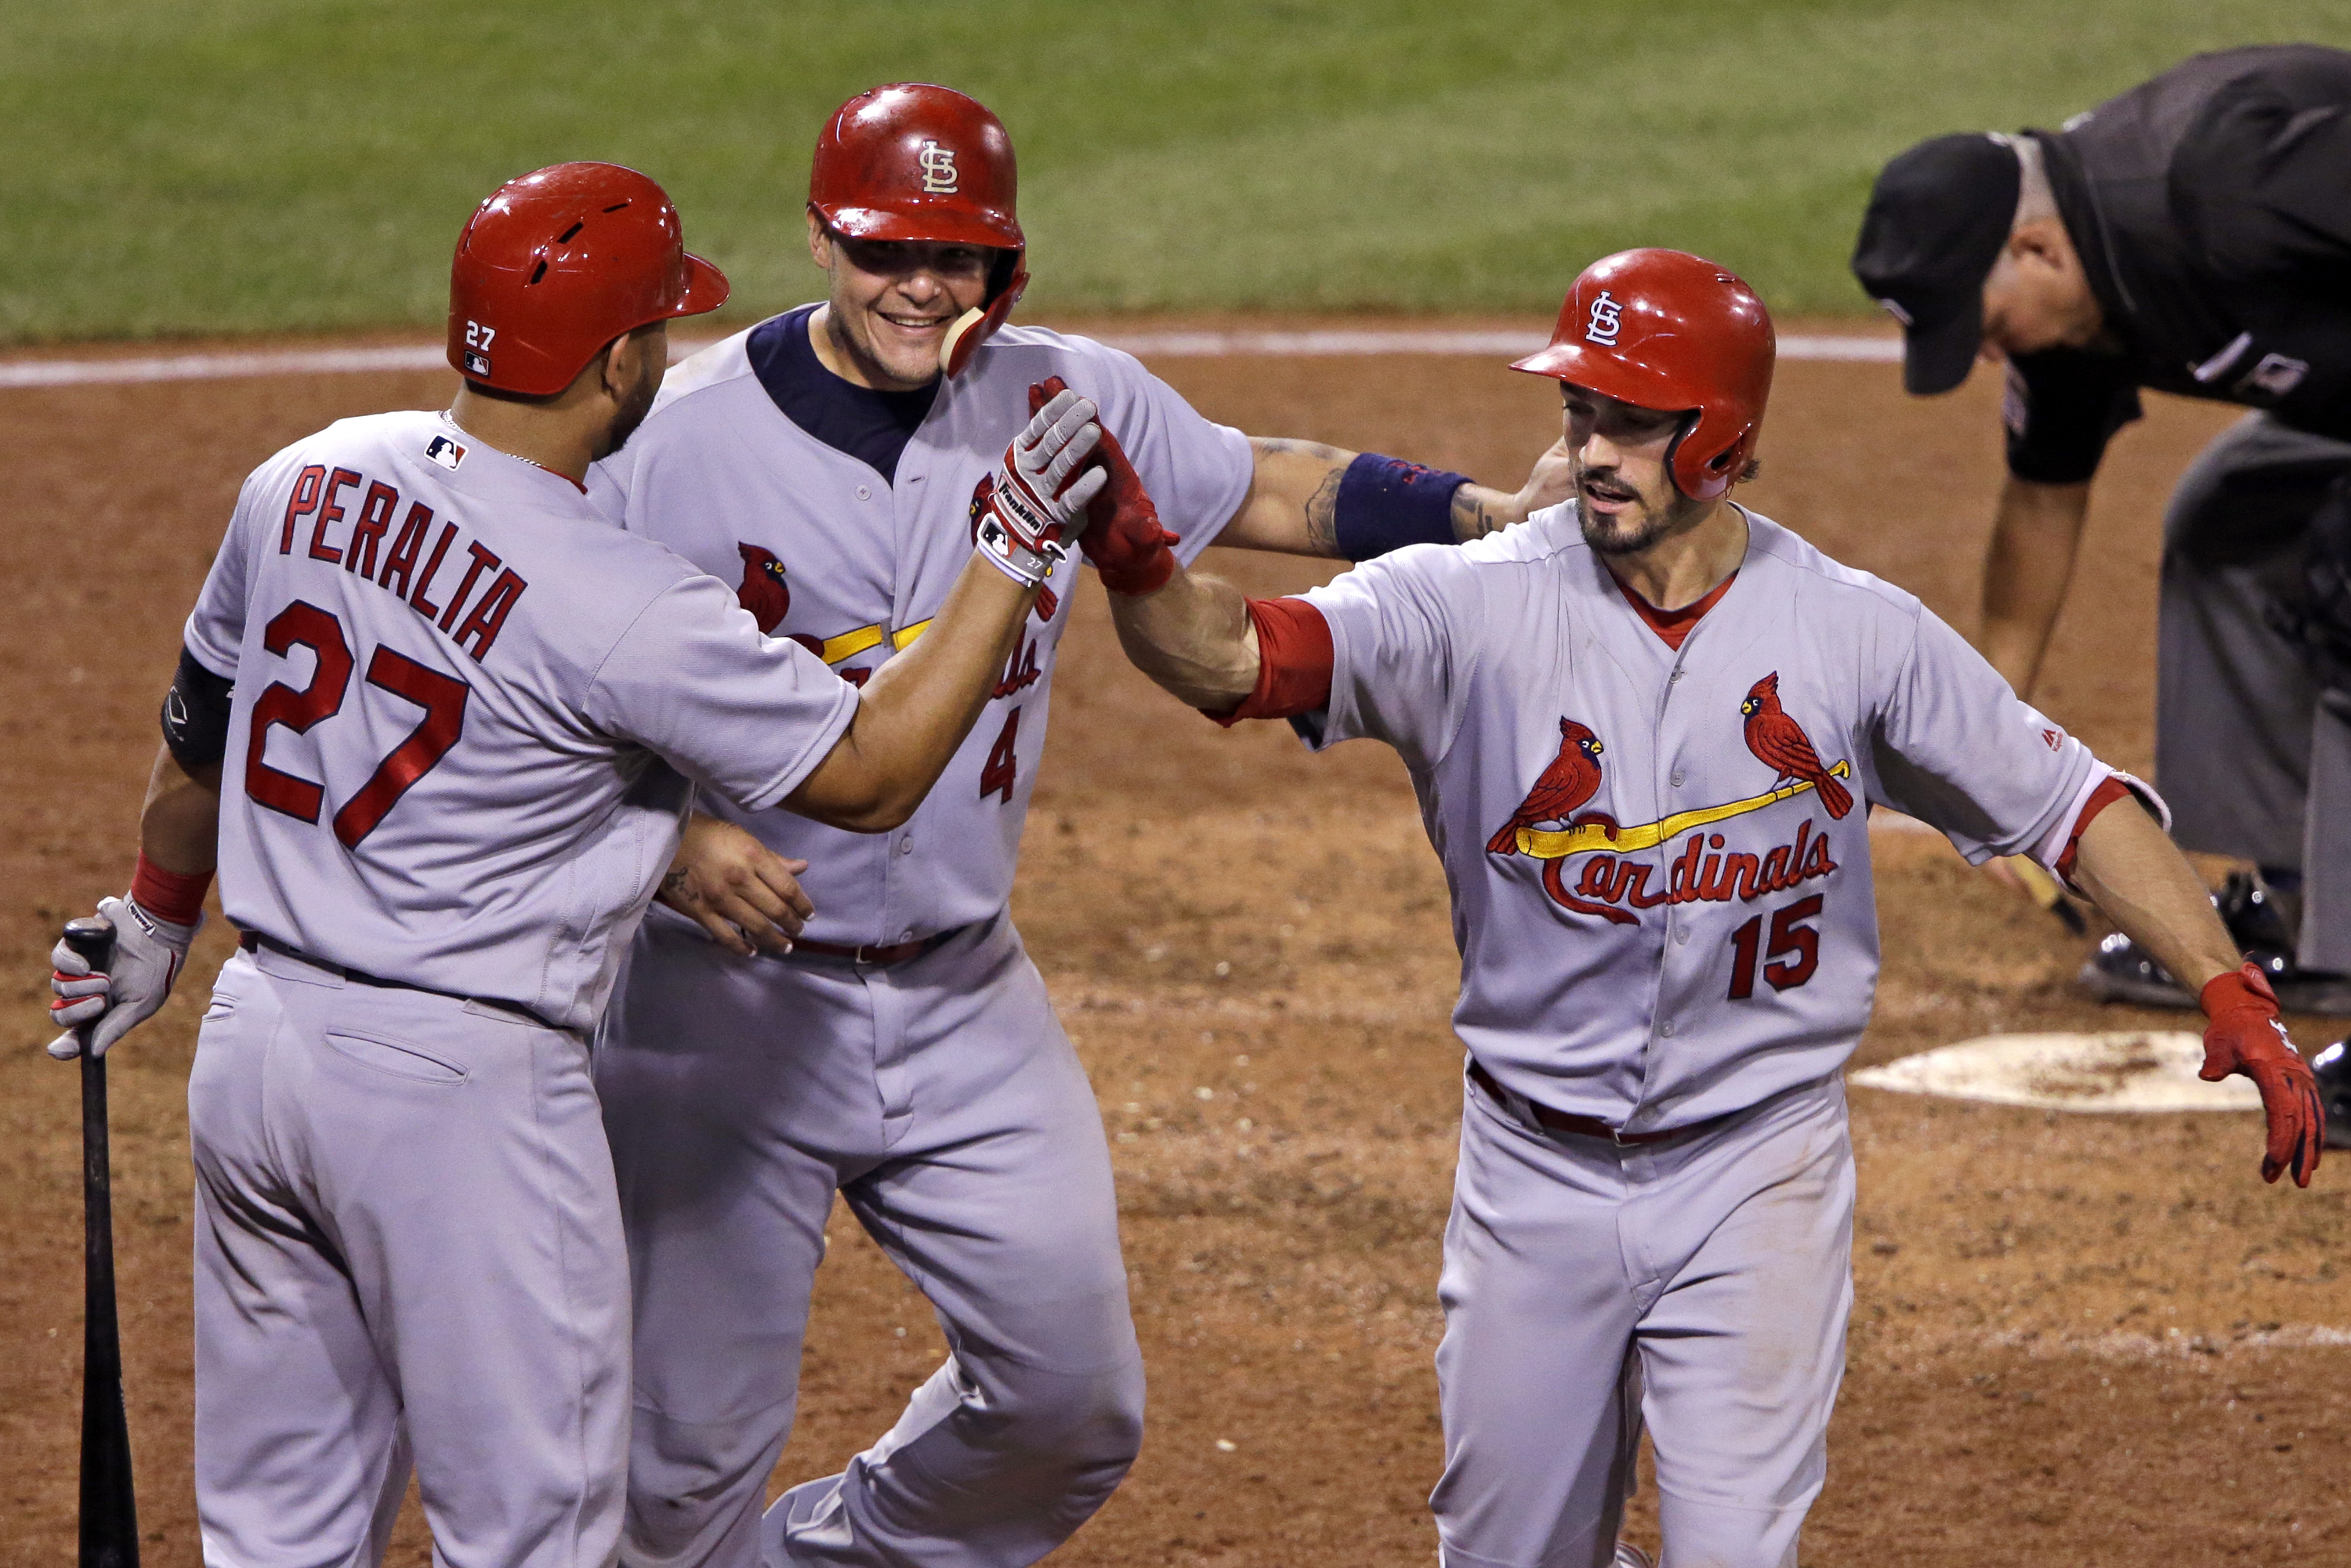 St. Louis Cardinals' Randal Grichuk (15) celebrates with teammates Yadier Molina, center, and Jhonny Peralta (27) after hitting a two-run home run off Pittsburgh Pirates relief pitcher Tony Watson during the ninth inning of a baseball game in Pittsburgh,